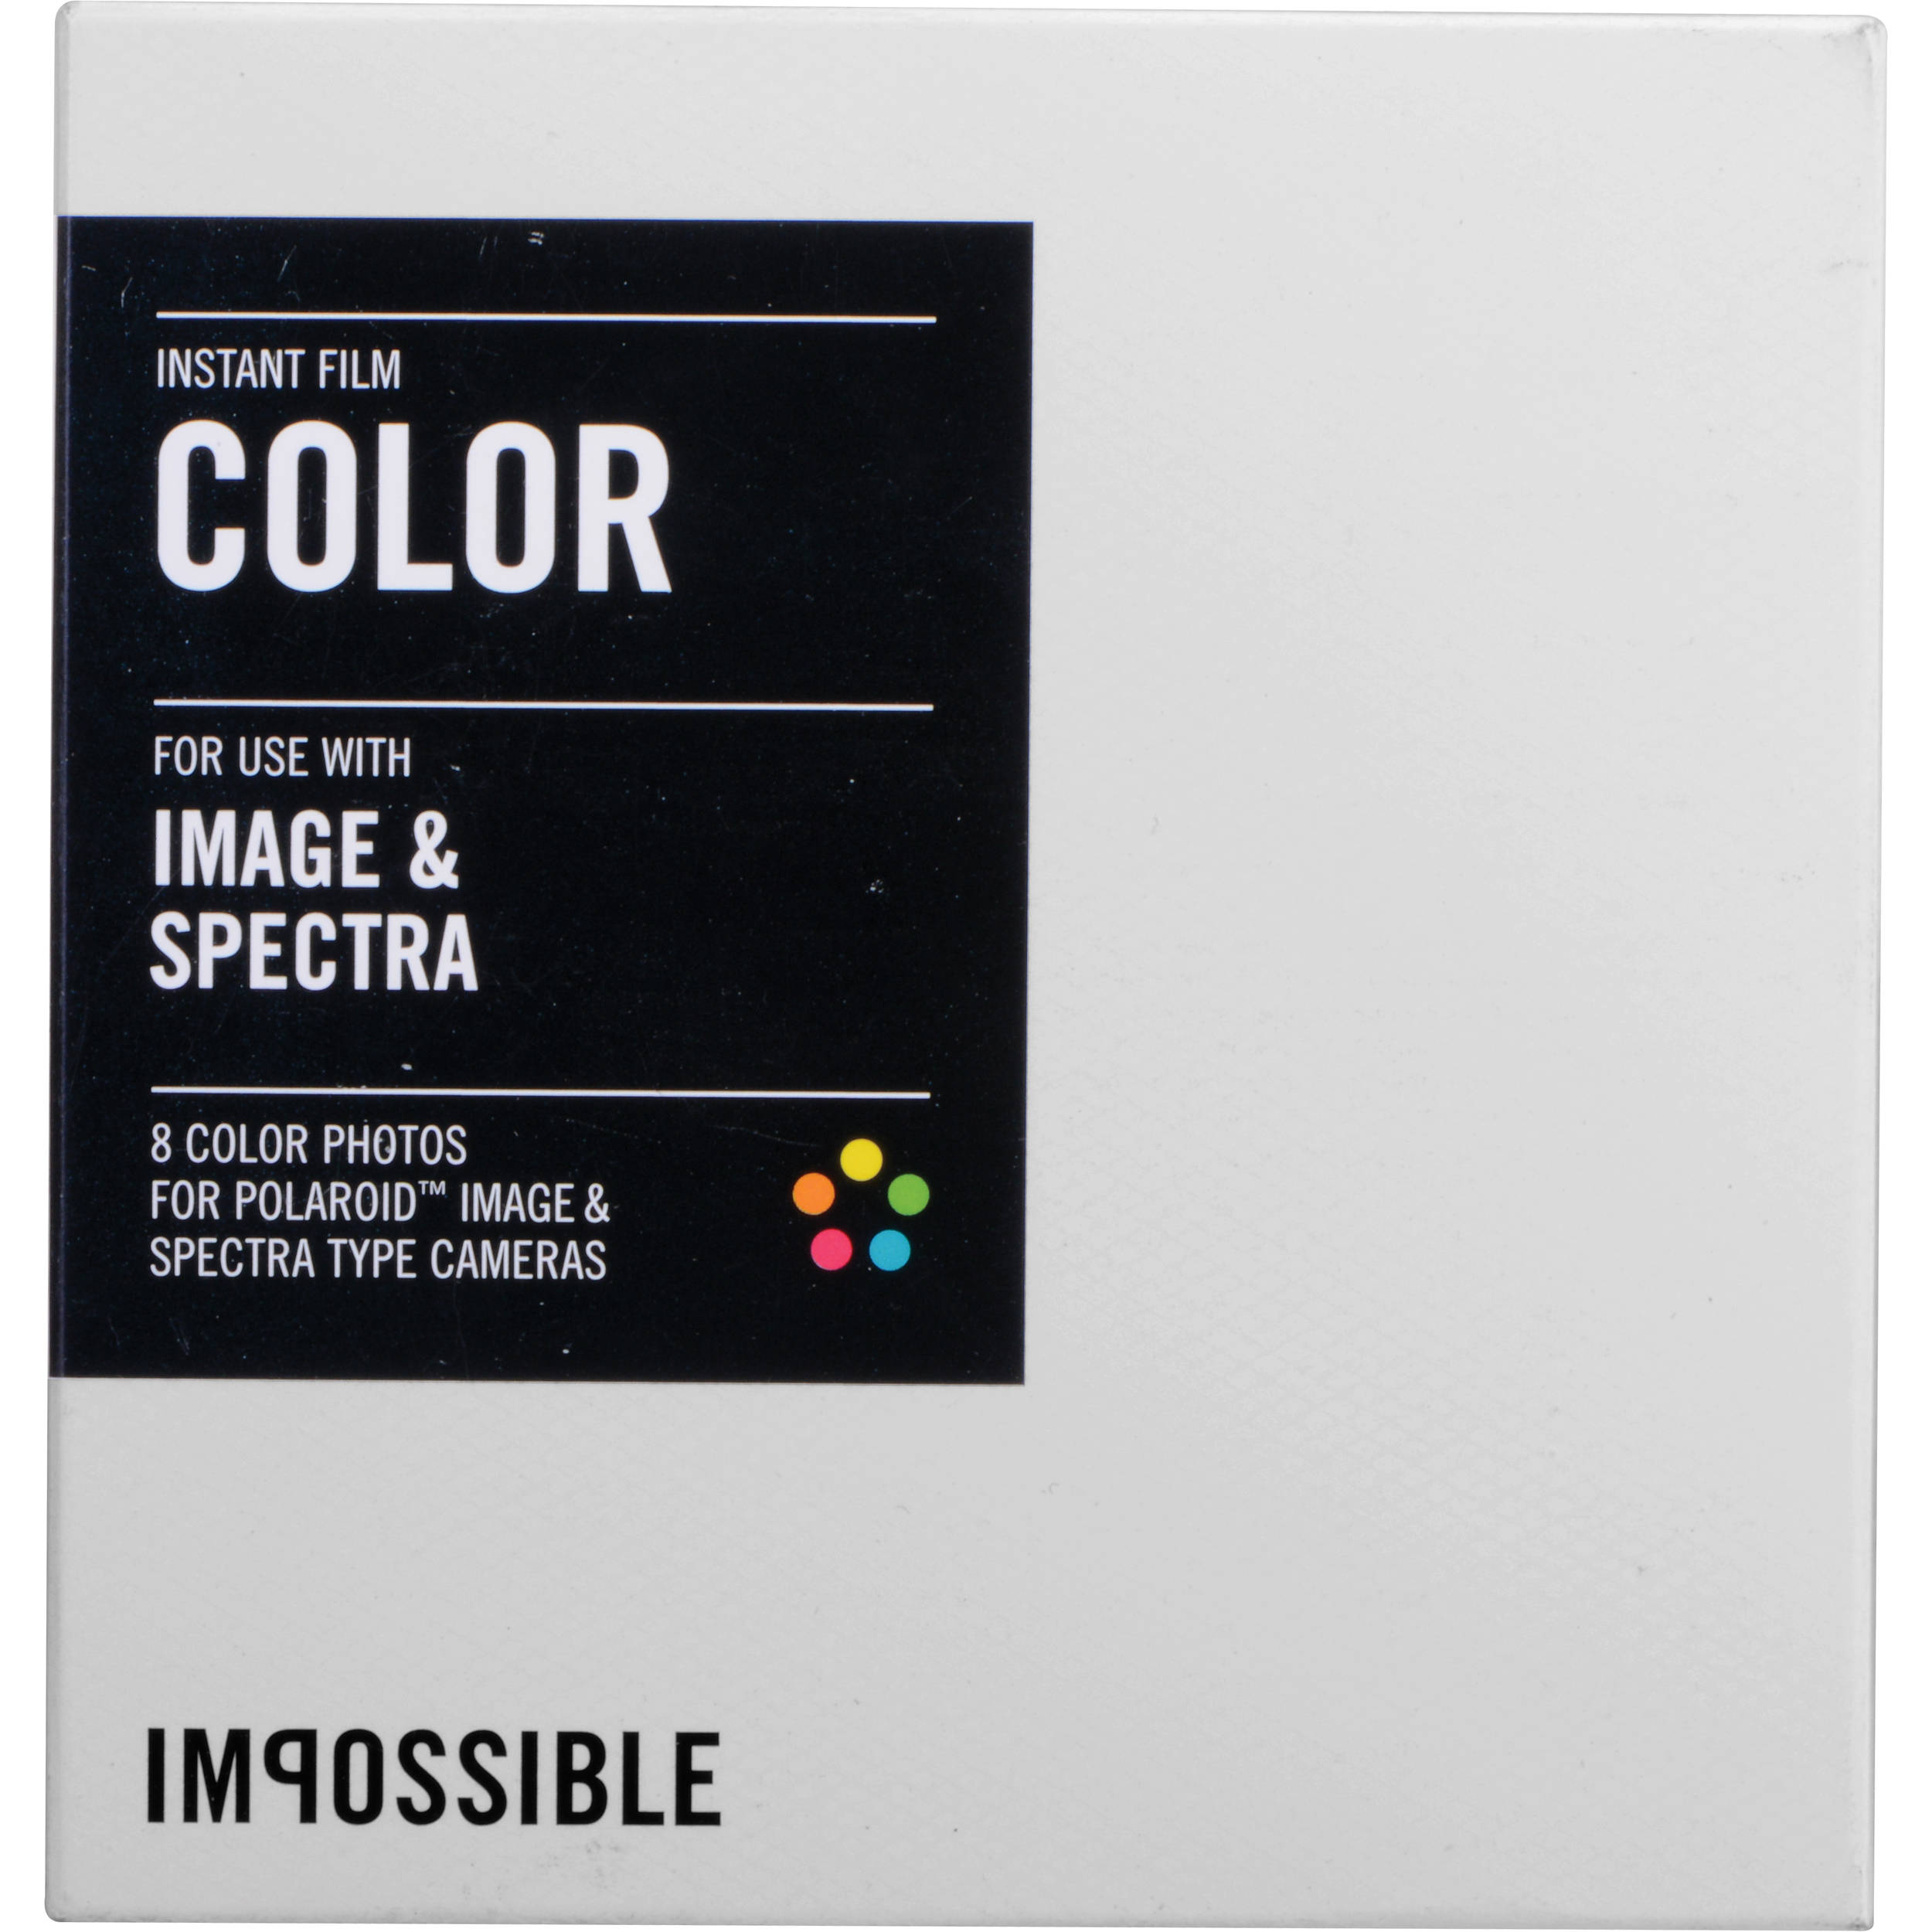 Bien connu Impossible Color Instant Film for Polaroid Image/Spectra 2787 ZY32